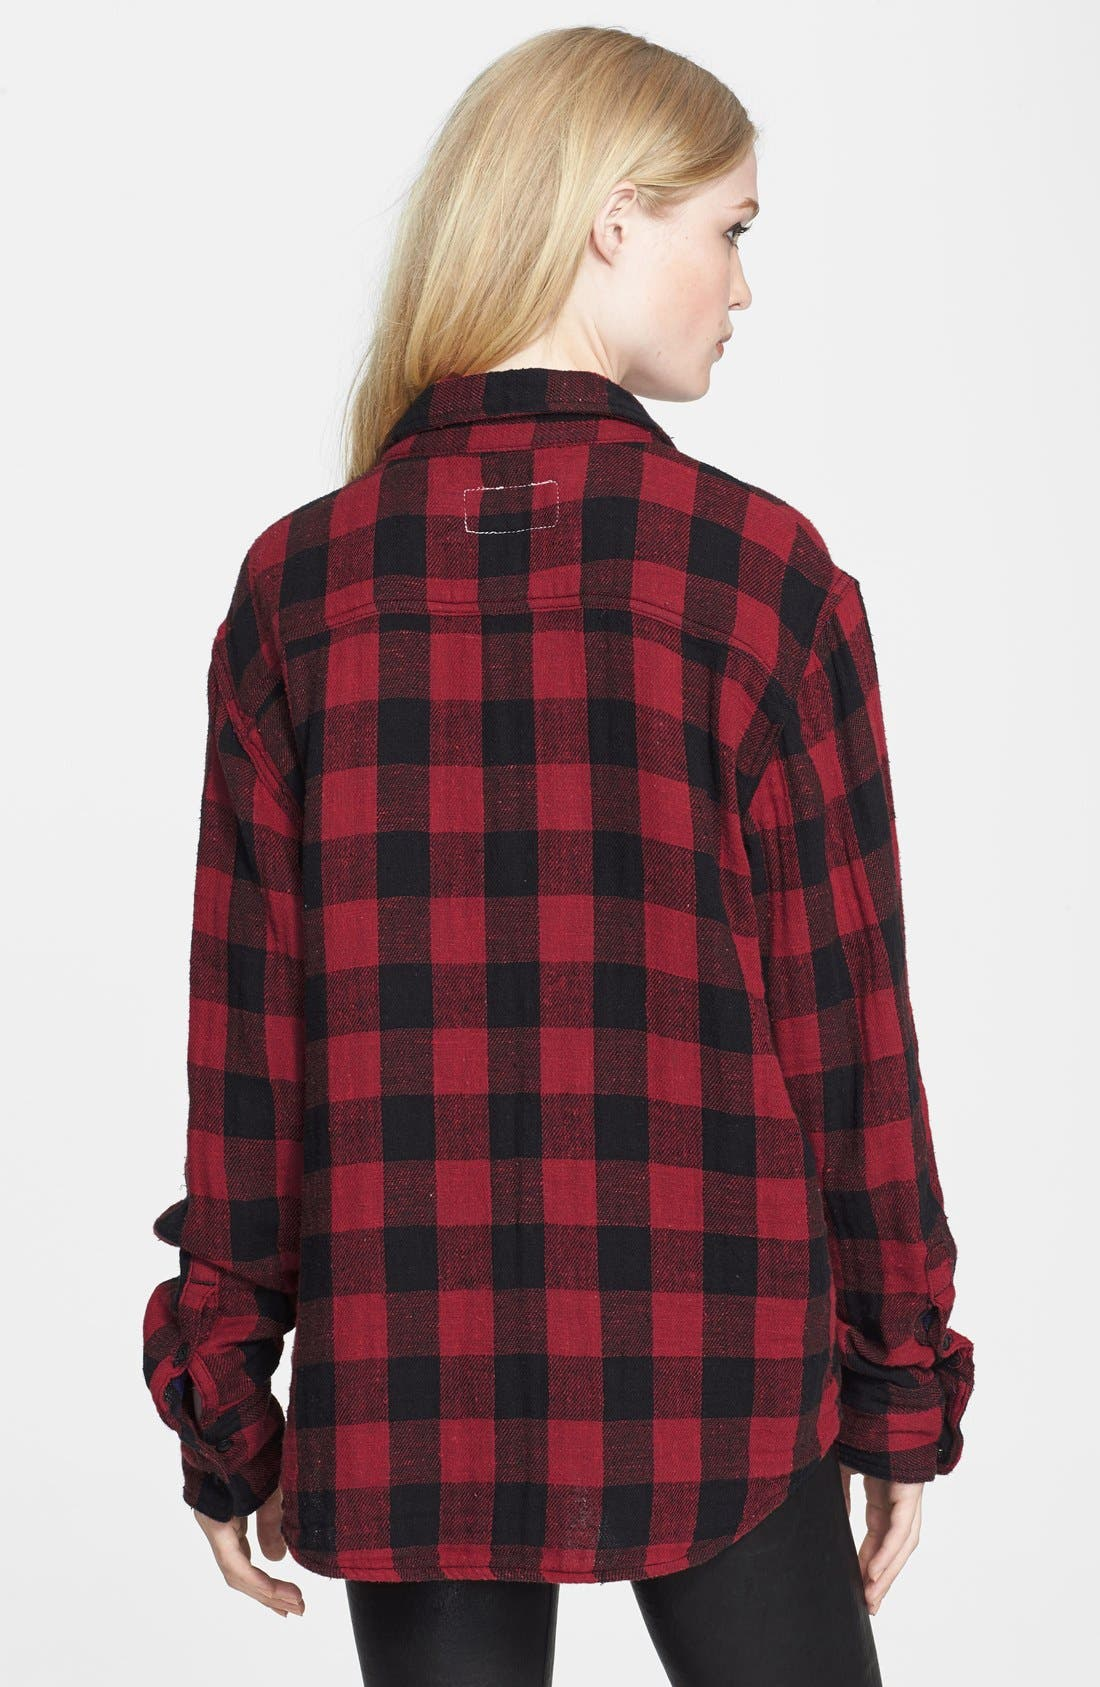 JEAN 'The Leeds' Plaid Shirt,                             Alternate thumbnail 2, color,                             600